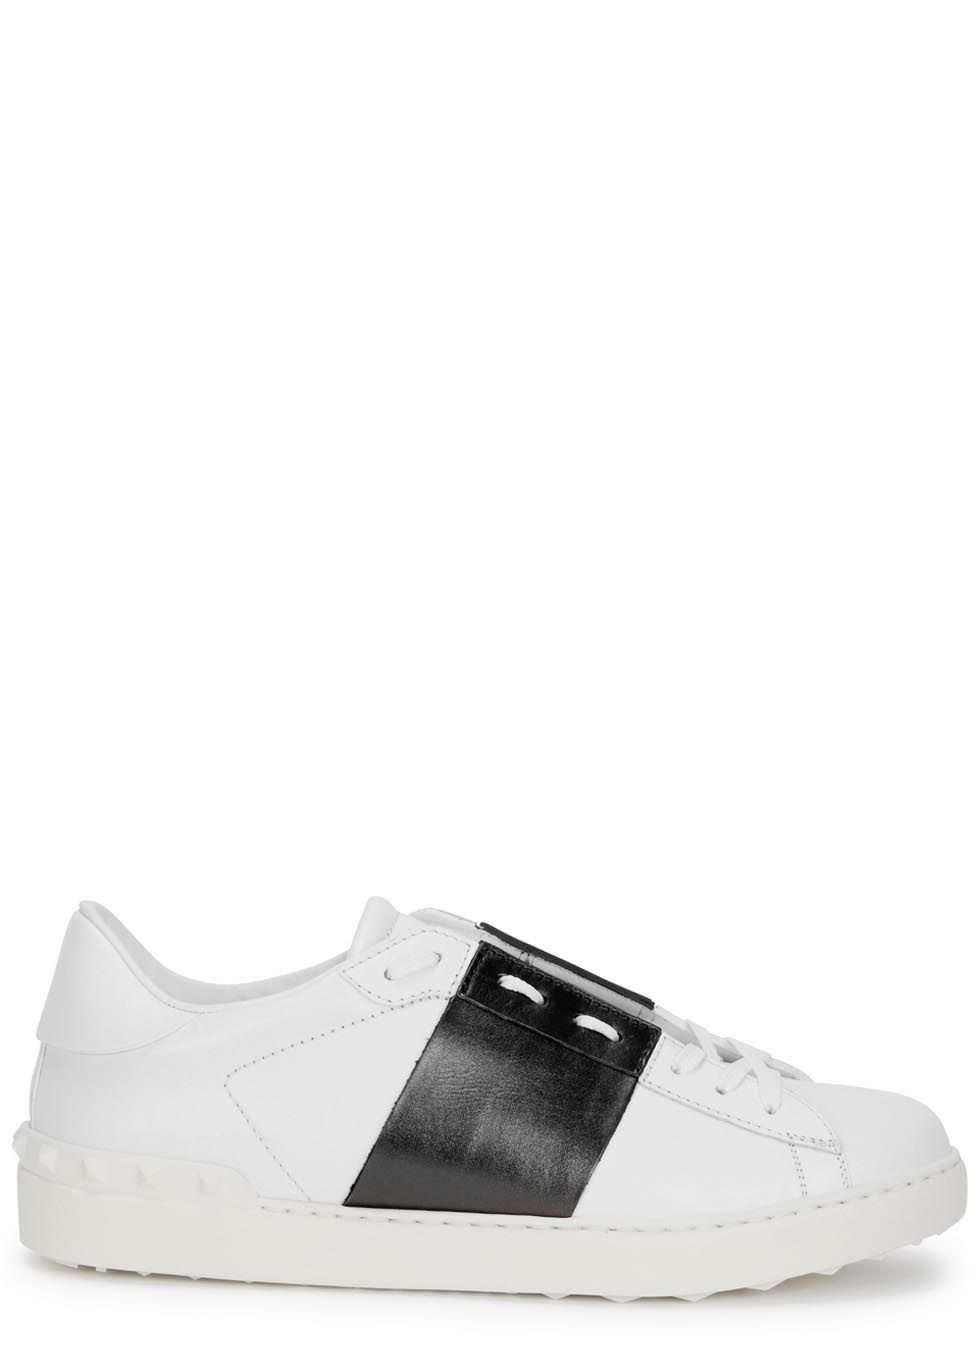 855ebb63f69891 Valentino white leather trainers Dark brown metallic stripe appliqué ...